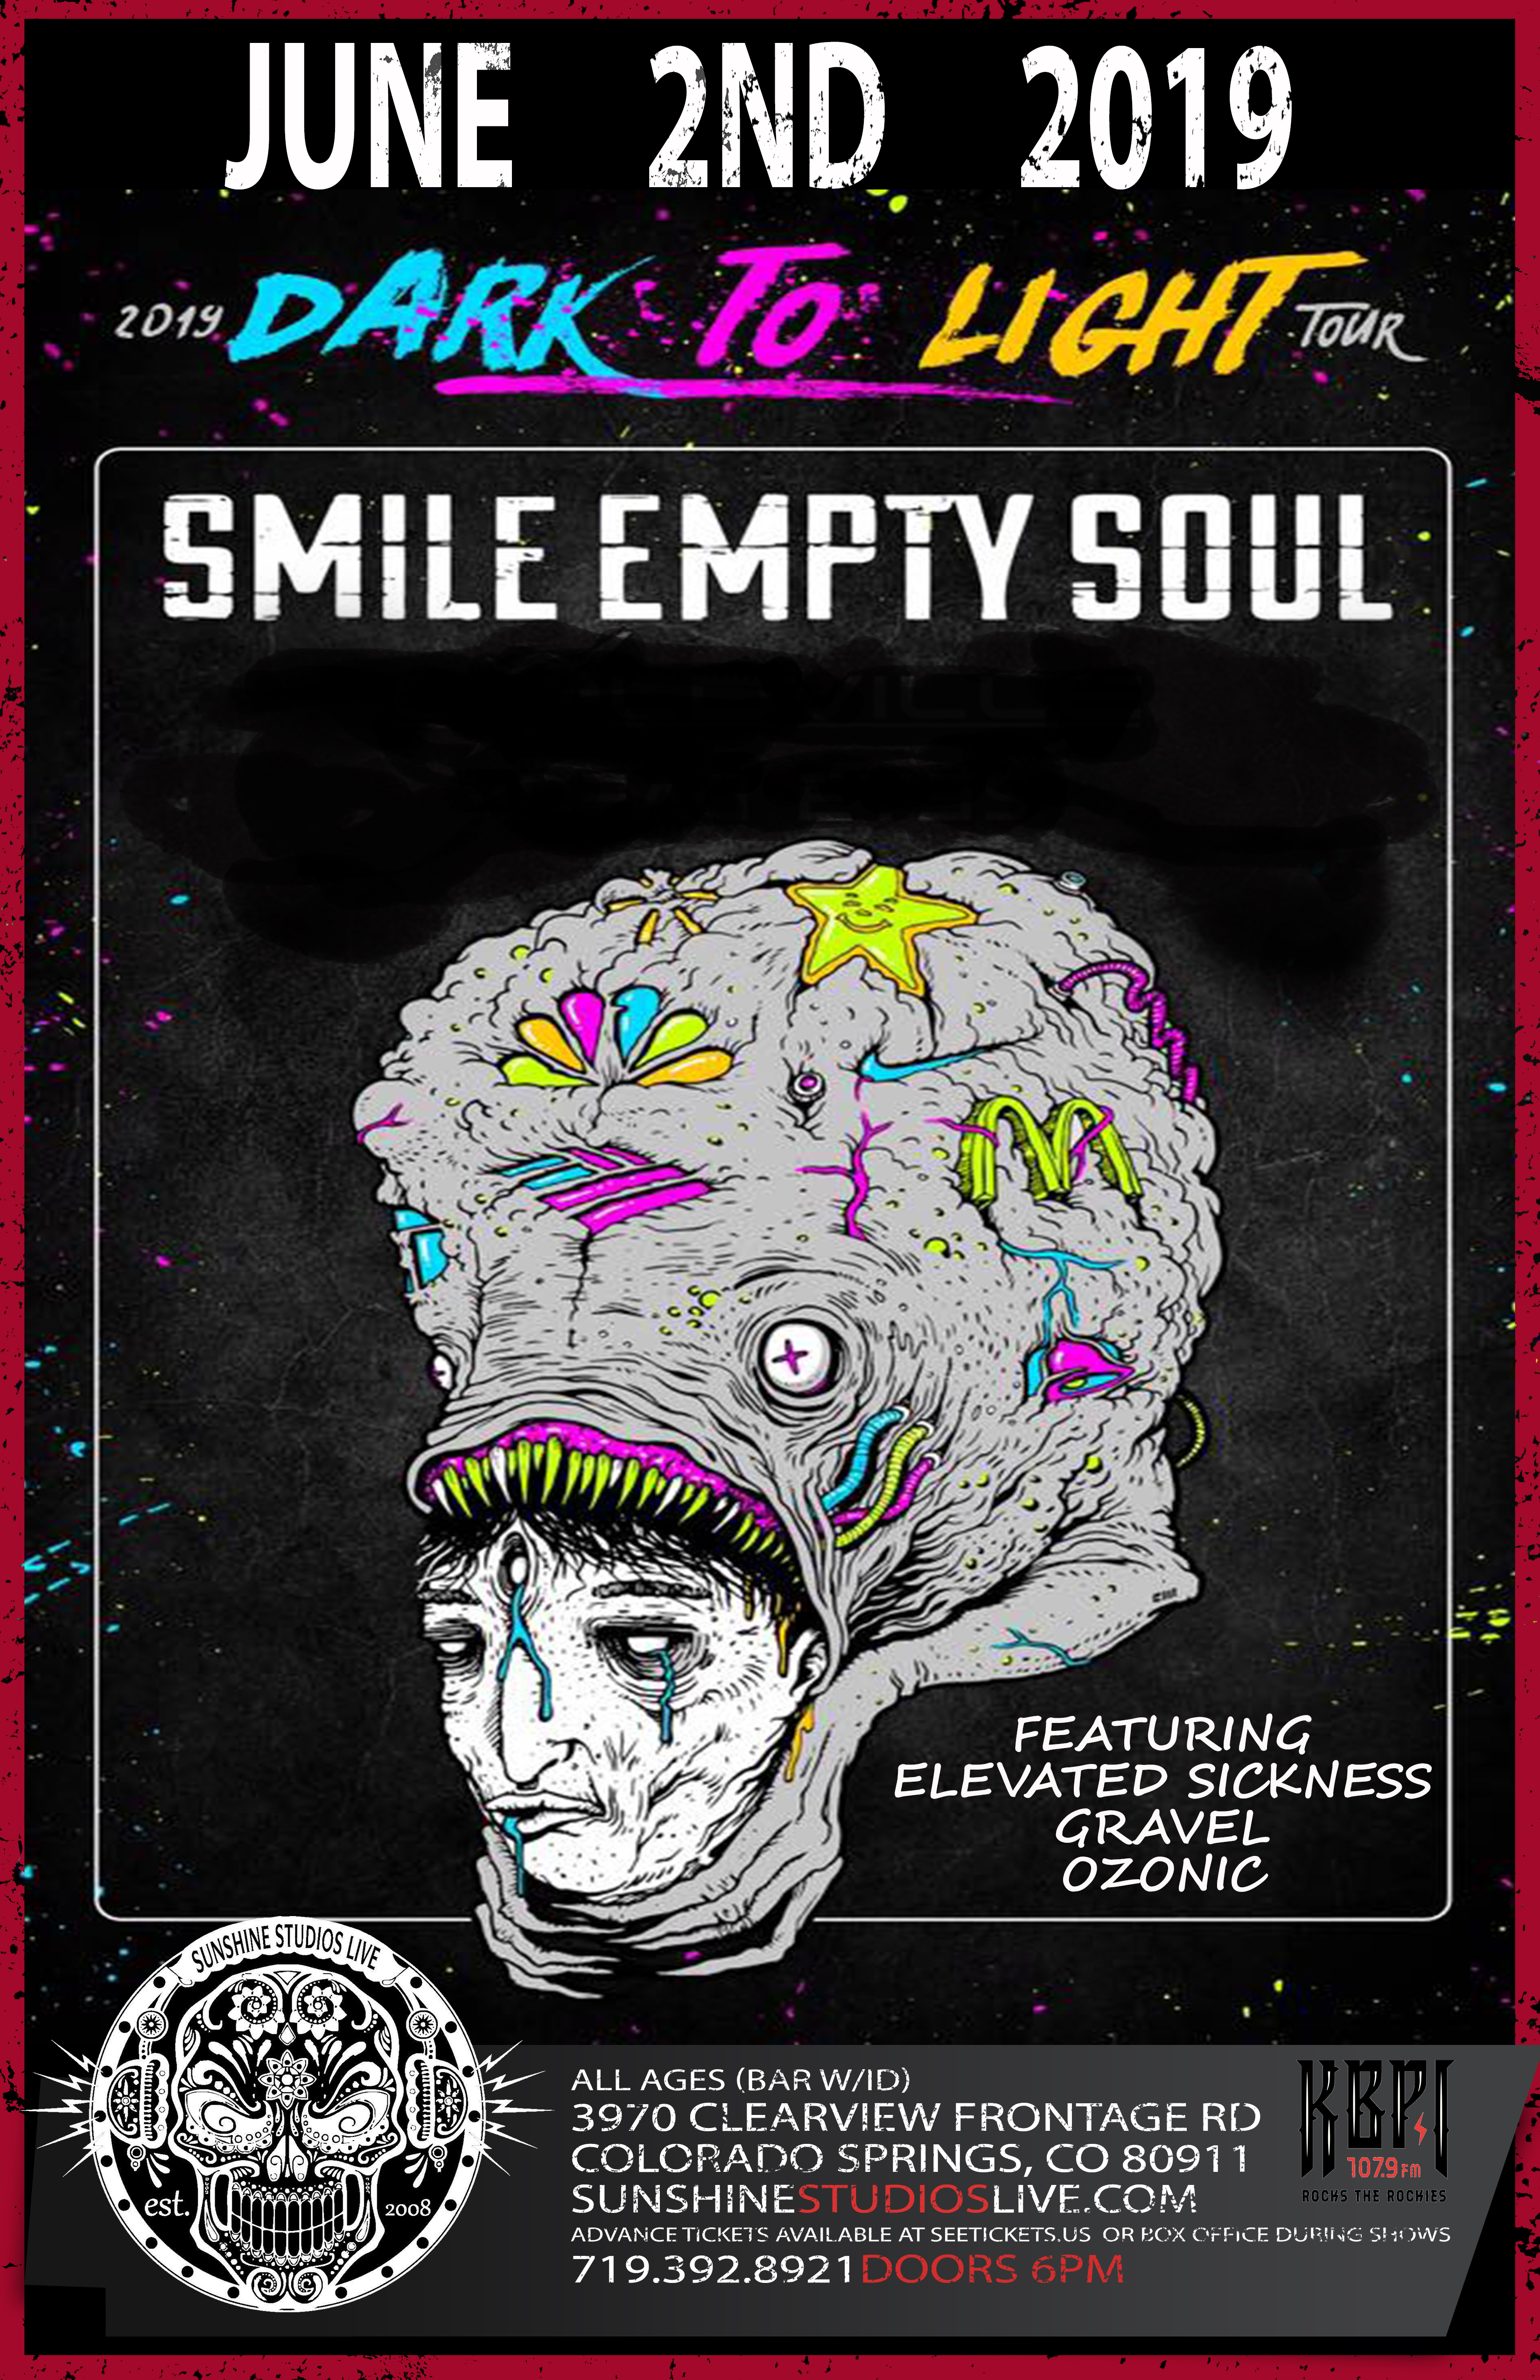 Buy Tickets to Smile Empty Soul Dark To Light Tour in Colorado